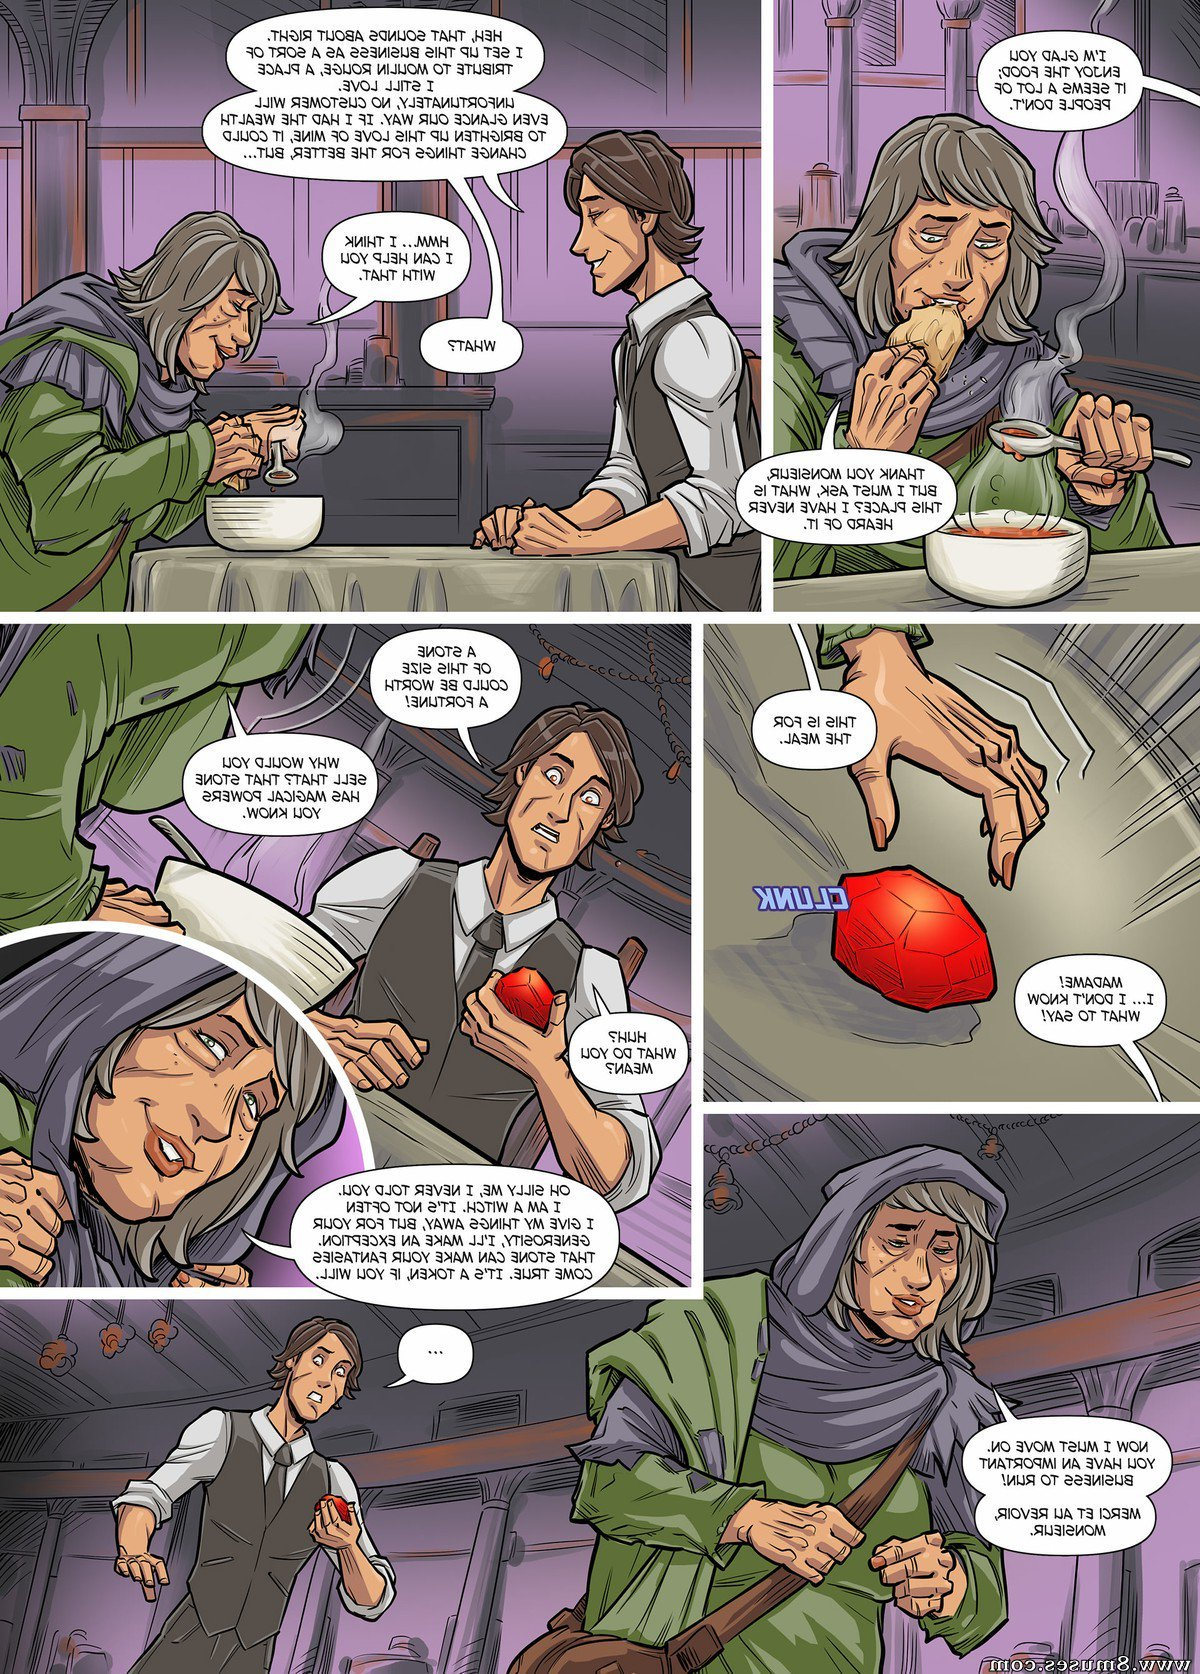 Expansionfan-Comics/The-Growing-Mistress/Issue-1 The_Growing_Mistress_-_Issue_1_4.jpg